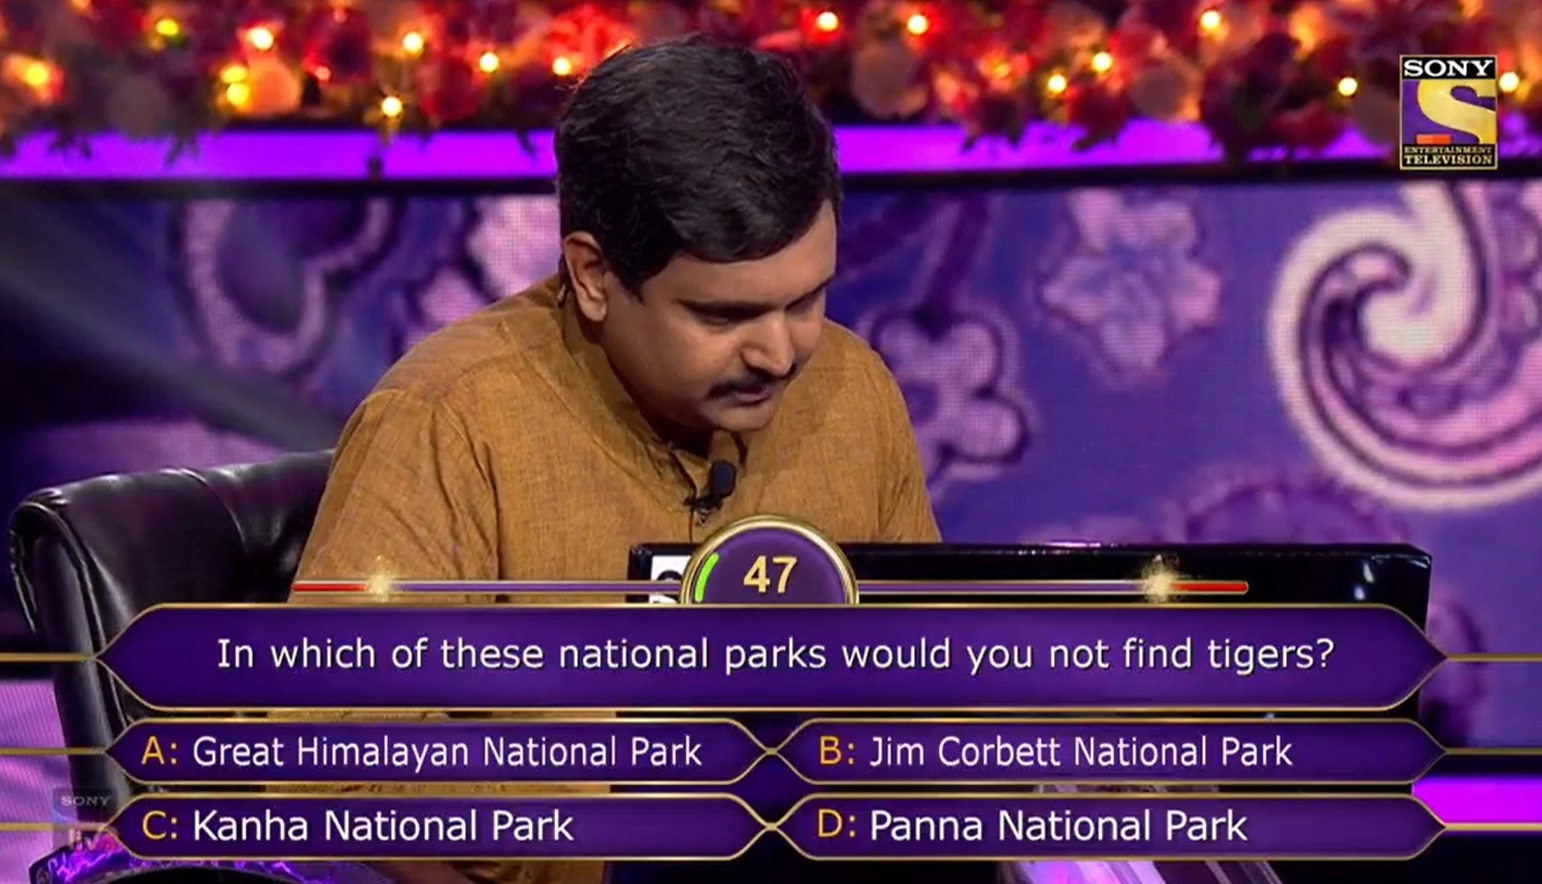 Ques : In which of these national parks would you not find tigers?